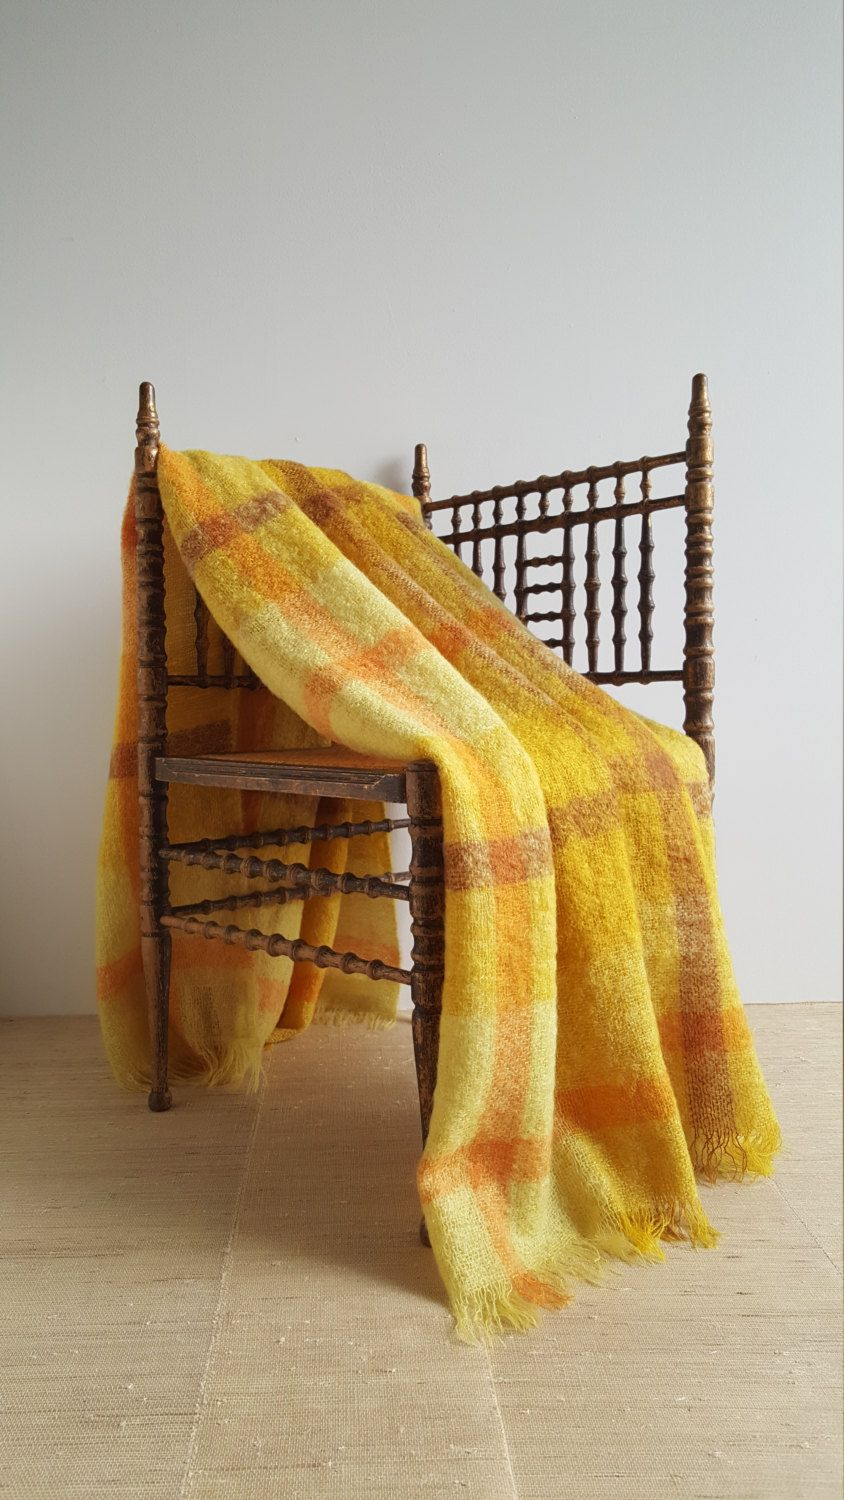 Vintage 1960s Golden Plaid Mohair Throw Or Camp Blanket With Fringe Sunny Yellow Gold Orange Rust Light Weight Mohair Camping Blanket Blanket Mohair Throw